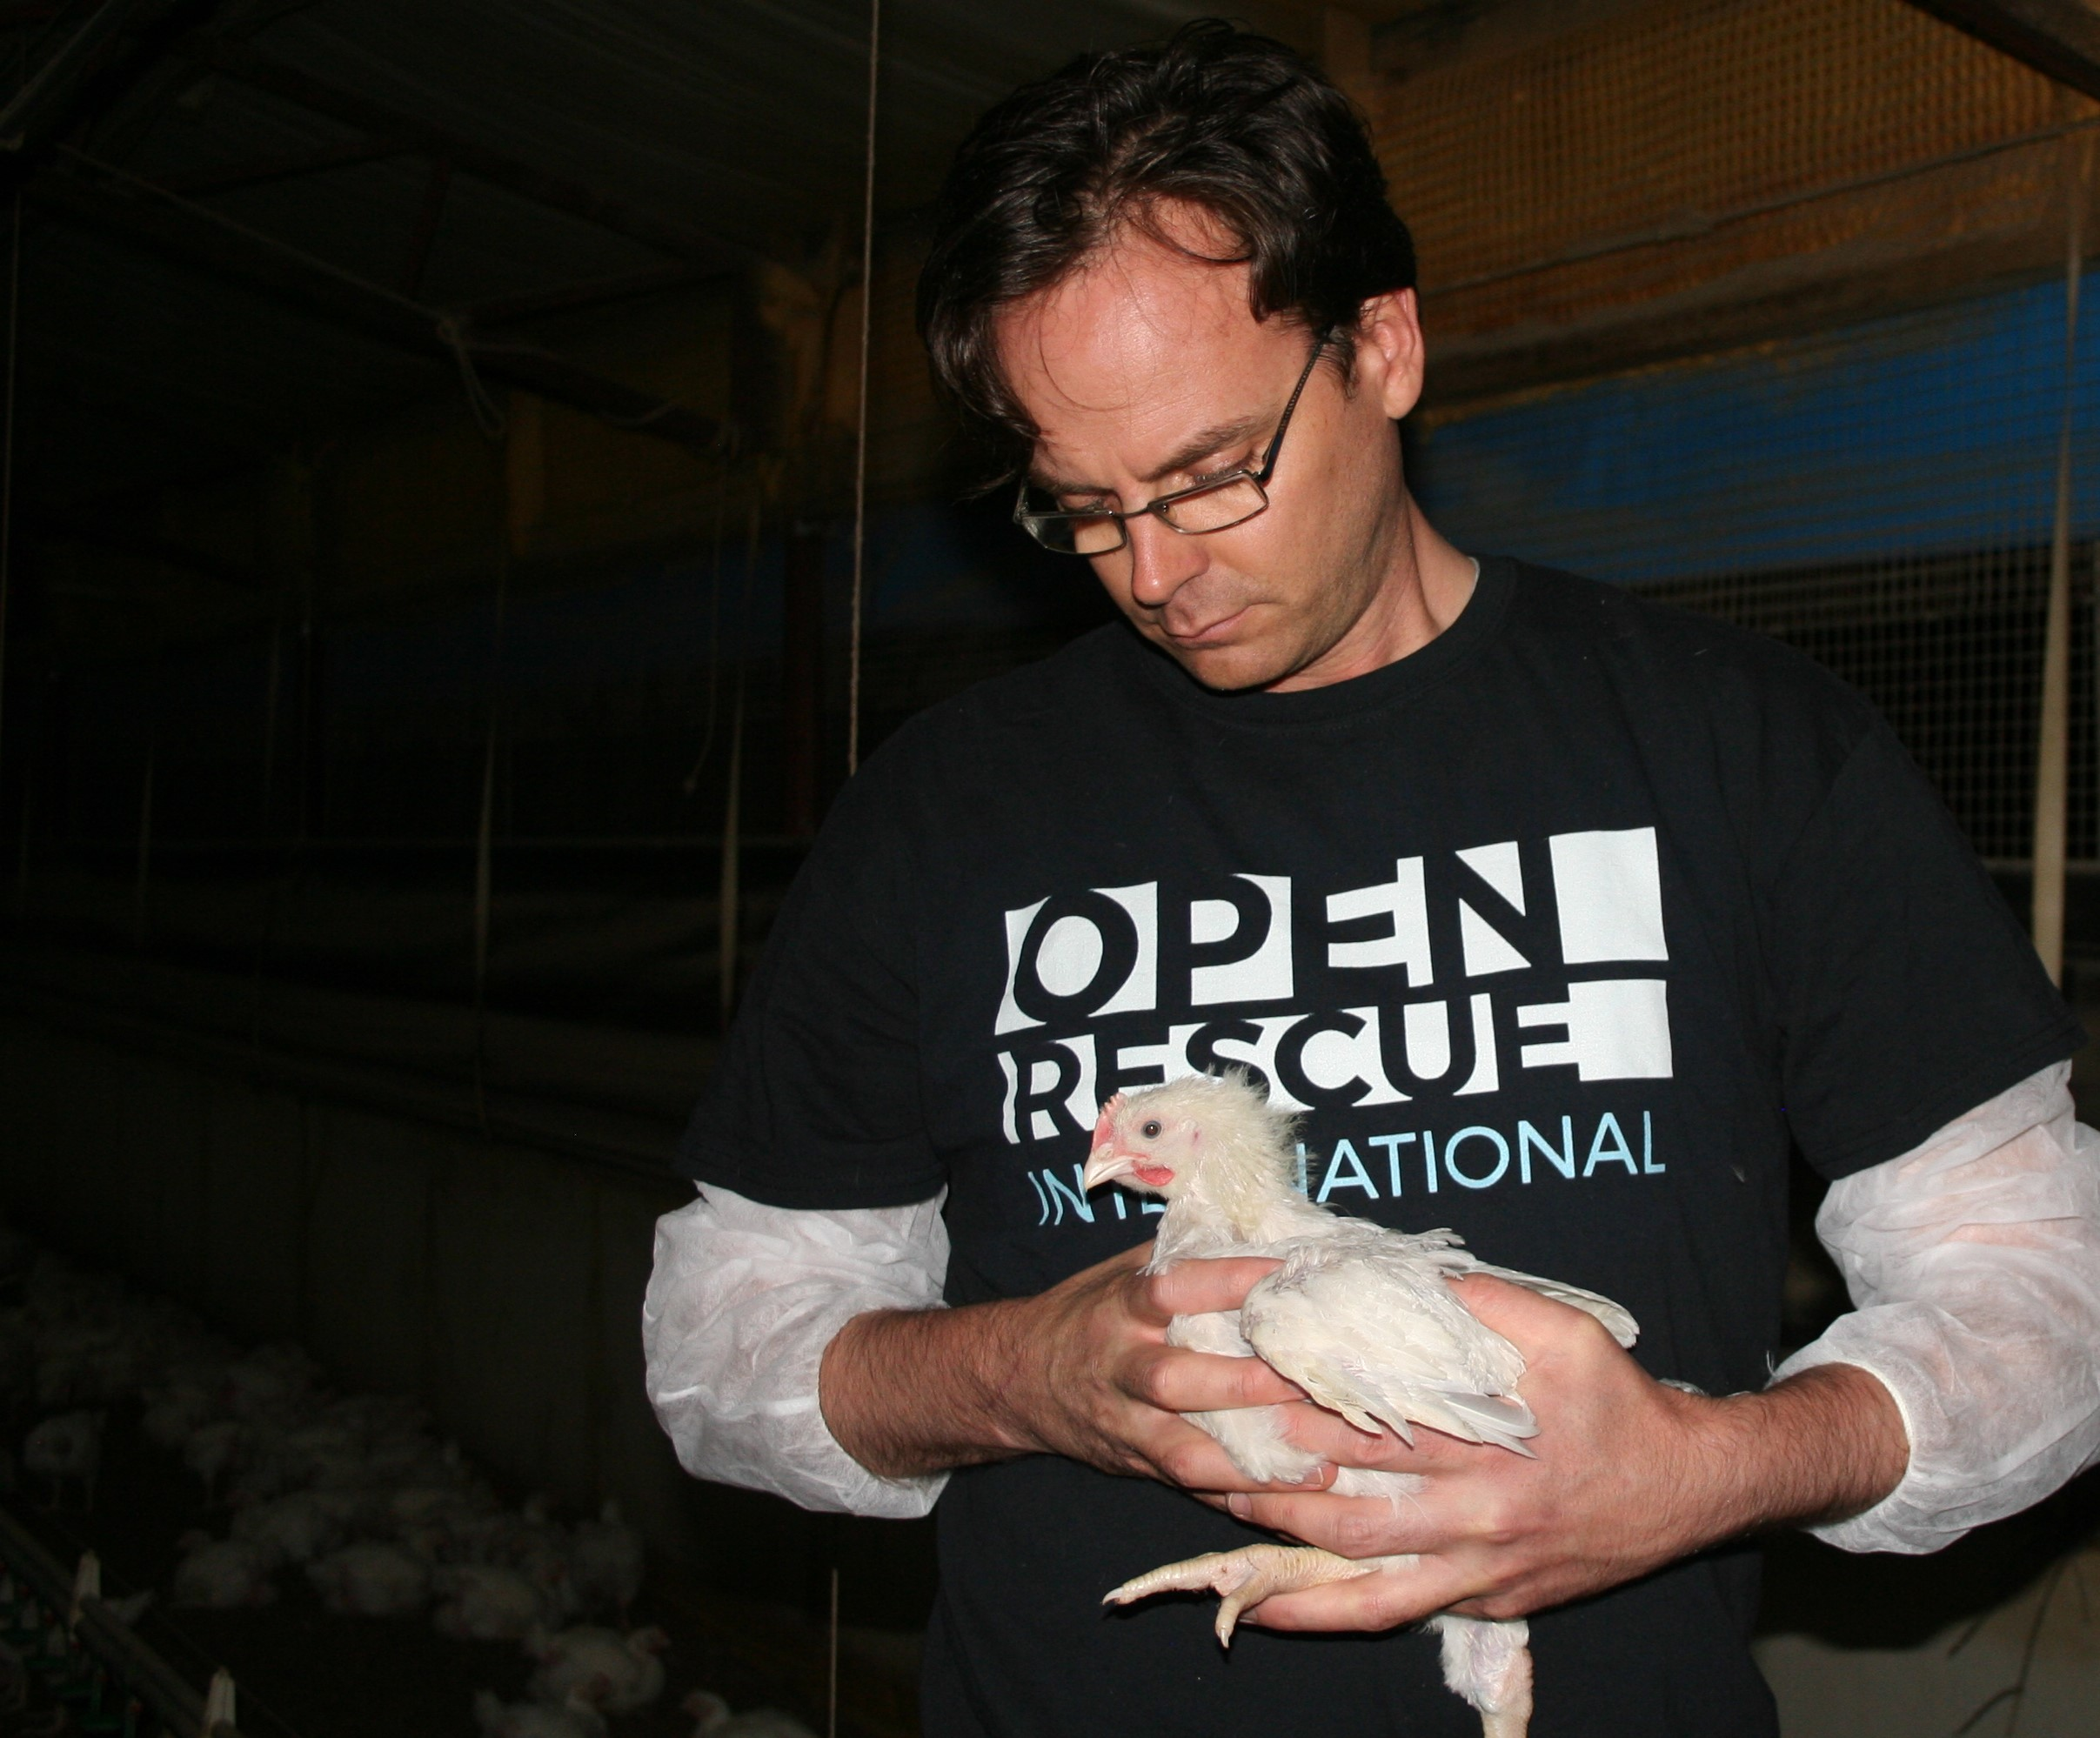 An activist from Animal Liberation Victoria in Australia rescues a young chick